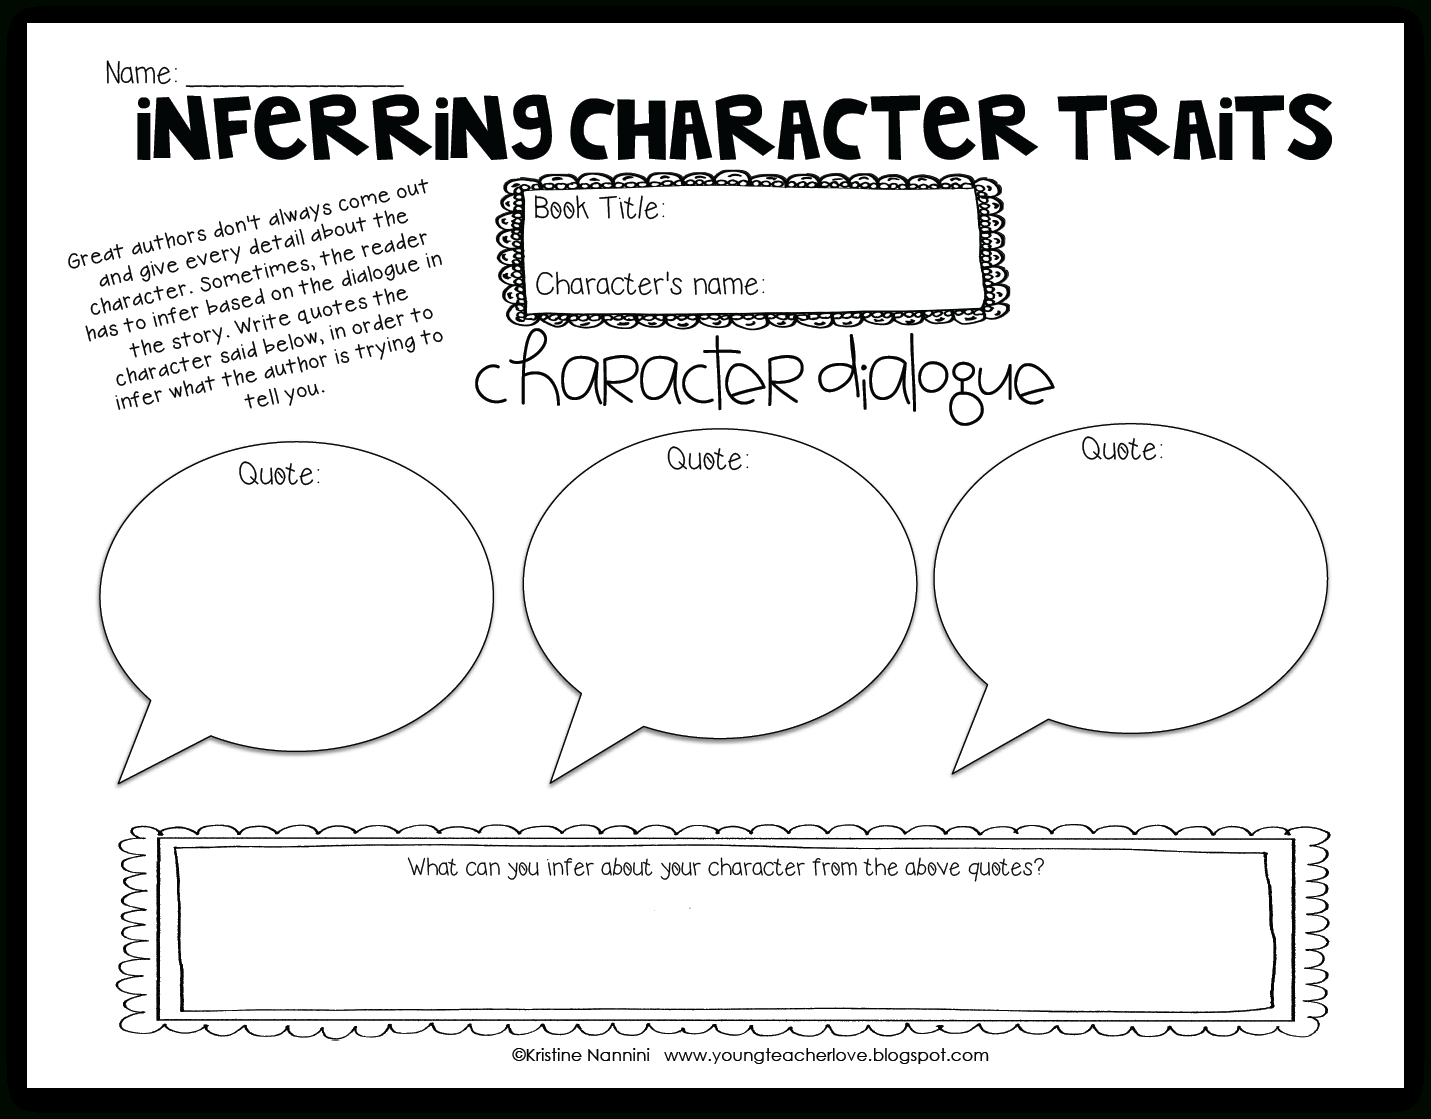 Inferring Character Traits Through Dialogue (Plus A Free Graphic - Free Printable Character Traits Graphic Organizer